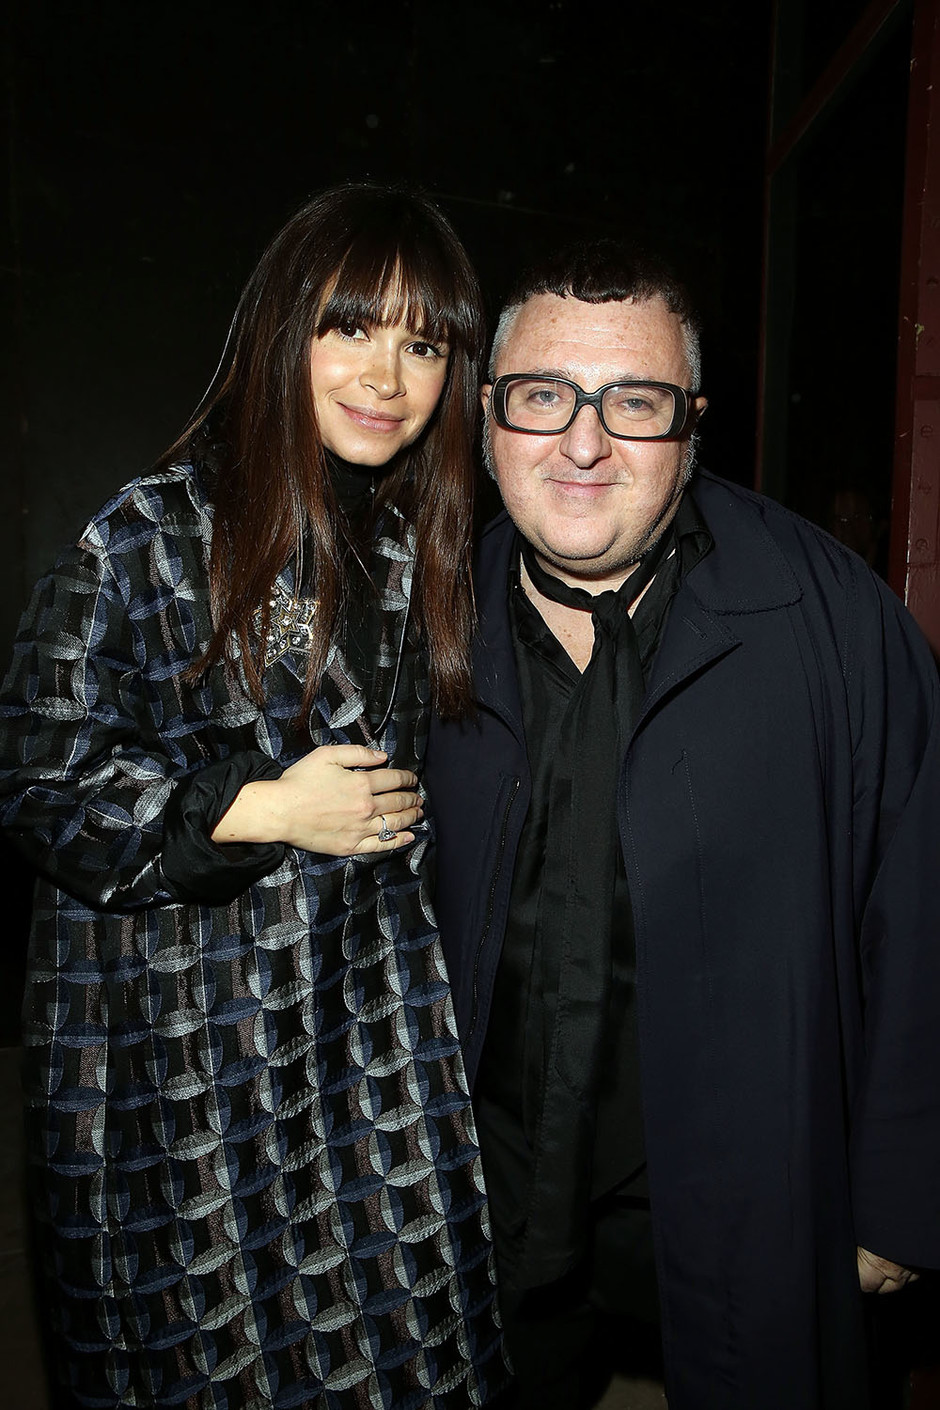 Miroslava Duma and Alber Elbaz pose after the Lanvin show as part of the Paris Fashion Week March 5, 2015